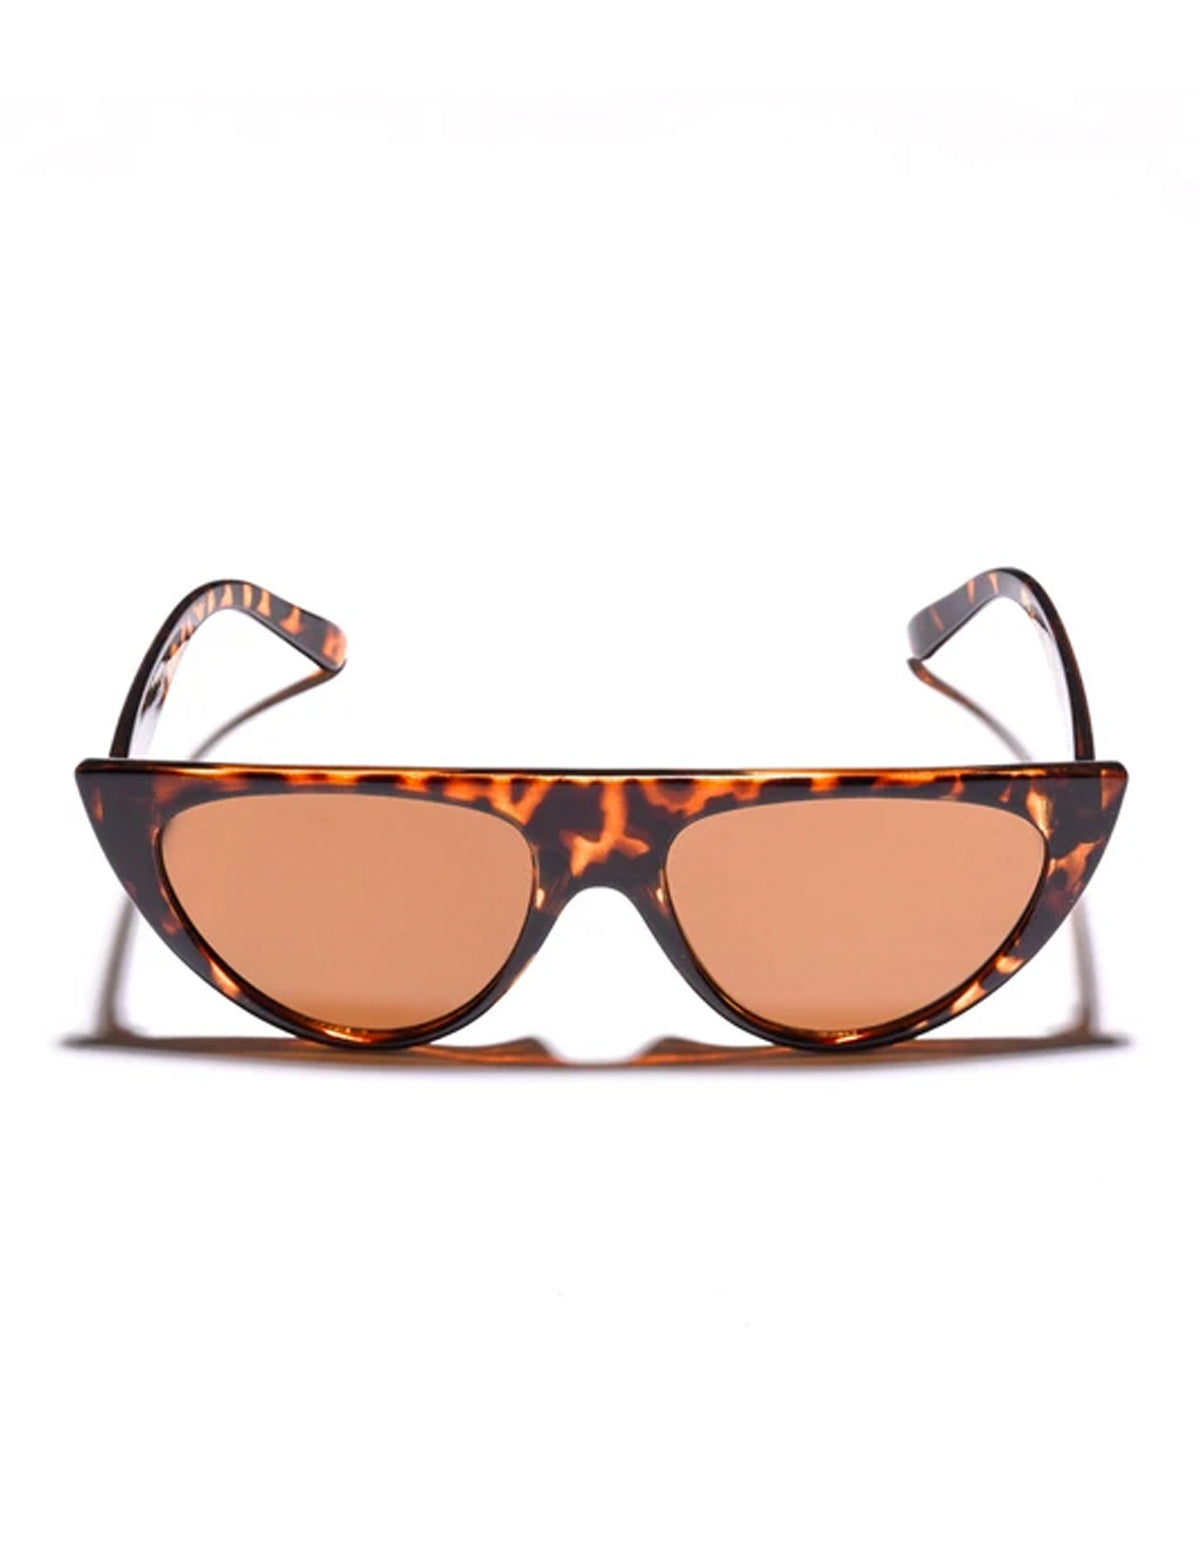 Mulberry & Grand Staying Shady Sunglasses Tortoise